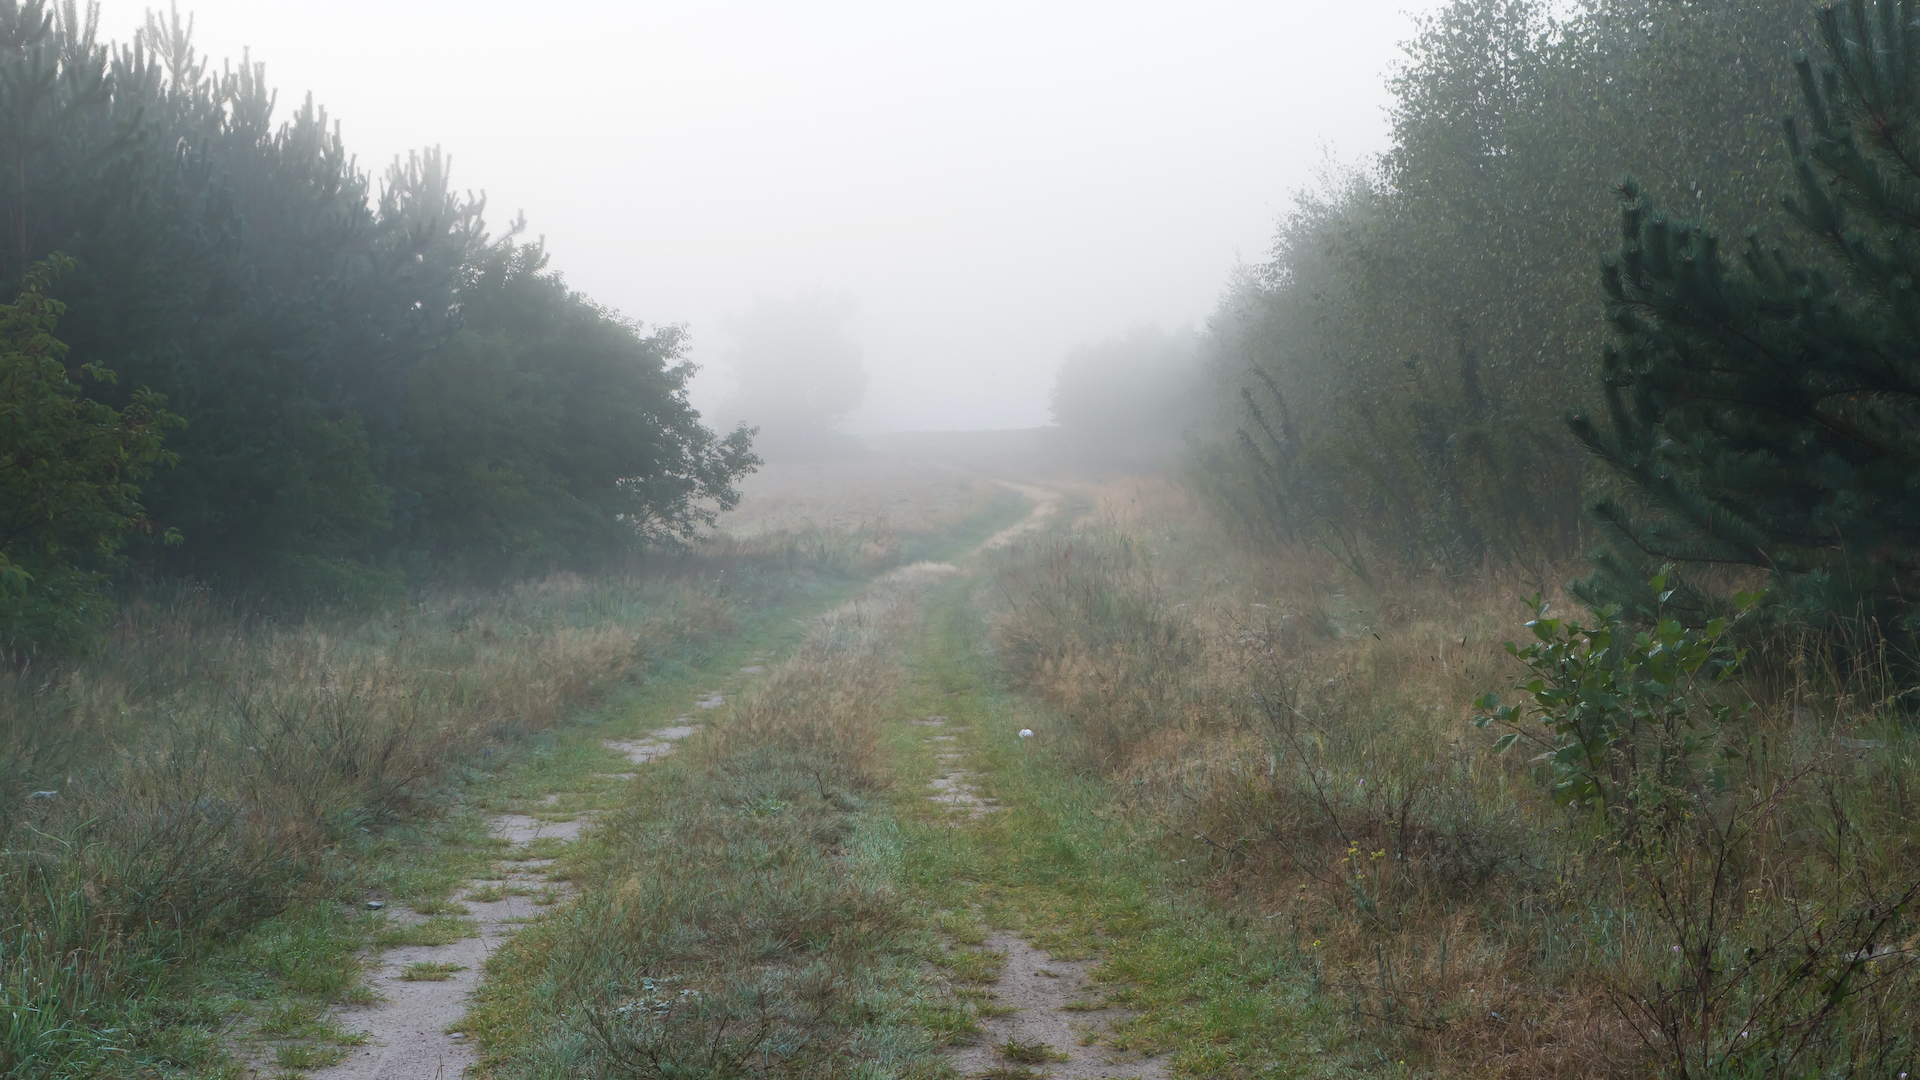 misty path that is not clear